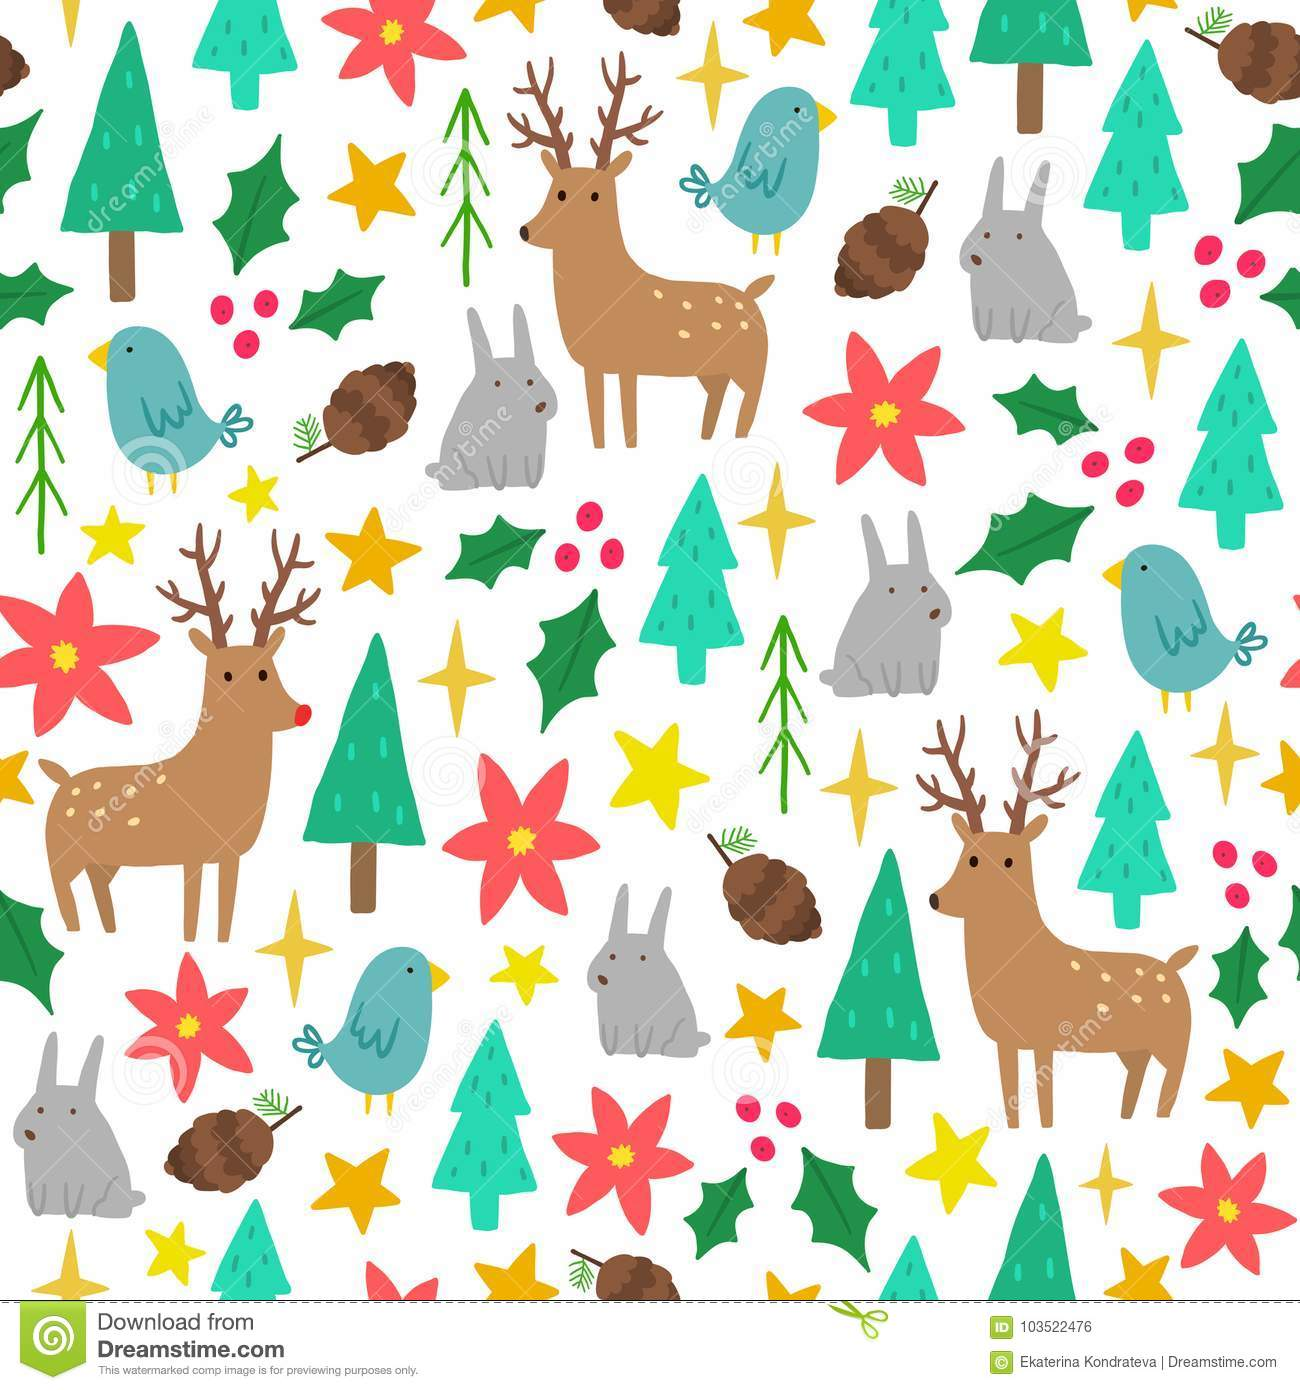 Christmas Backgrounds Cute.Cute Cartoon Christmas Background Stock Vector